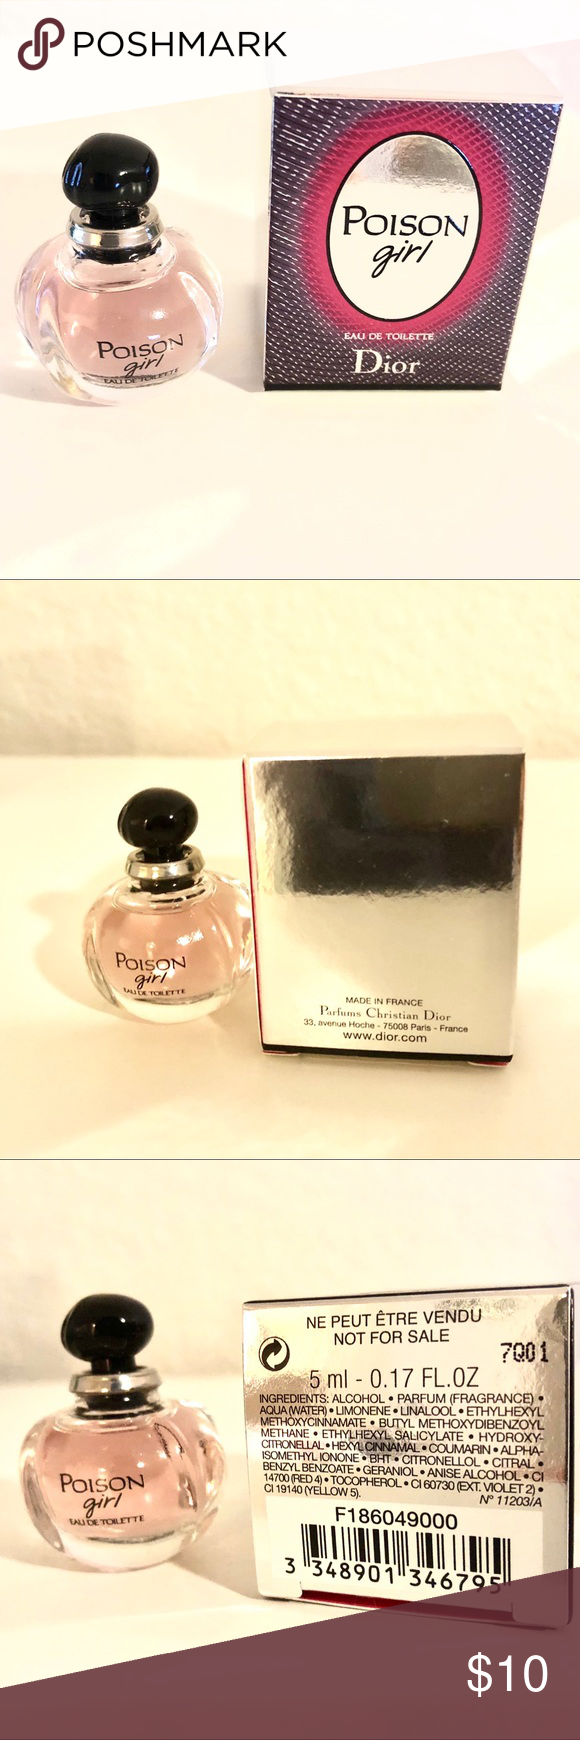 Dior Poison Girl Eau De Toilette Travel Size New Nwt My Posh Picks